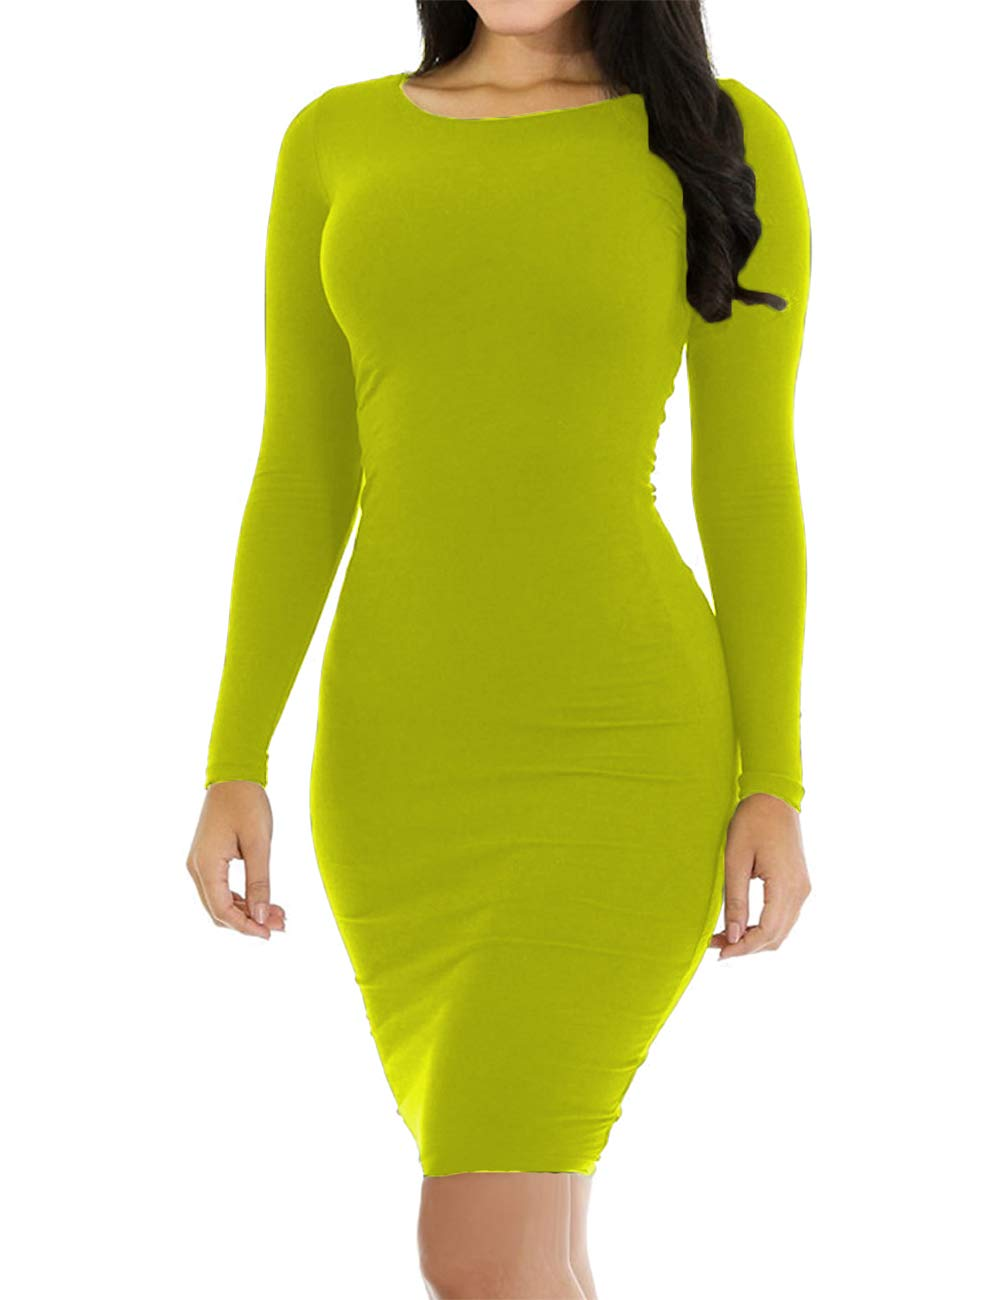 Available at Amazon: Women's Pencil Bodycon Dress Sexy Casual Long Sleeve Ruched Tight Midi Club Party Dress